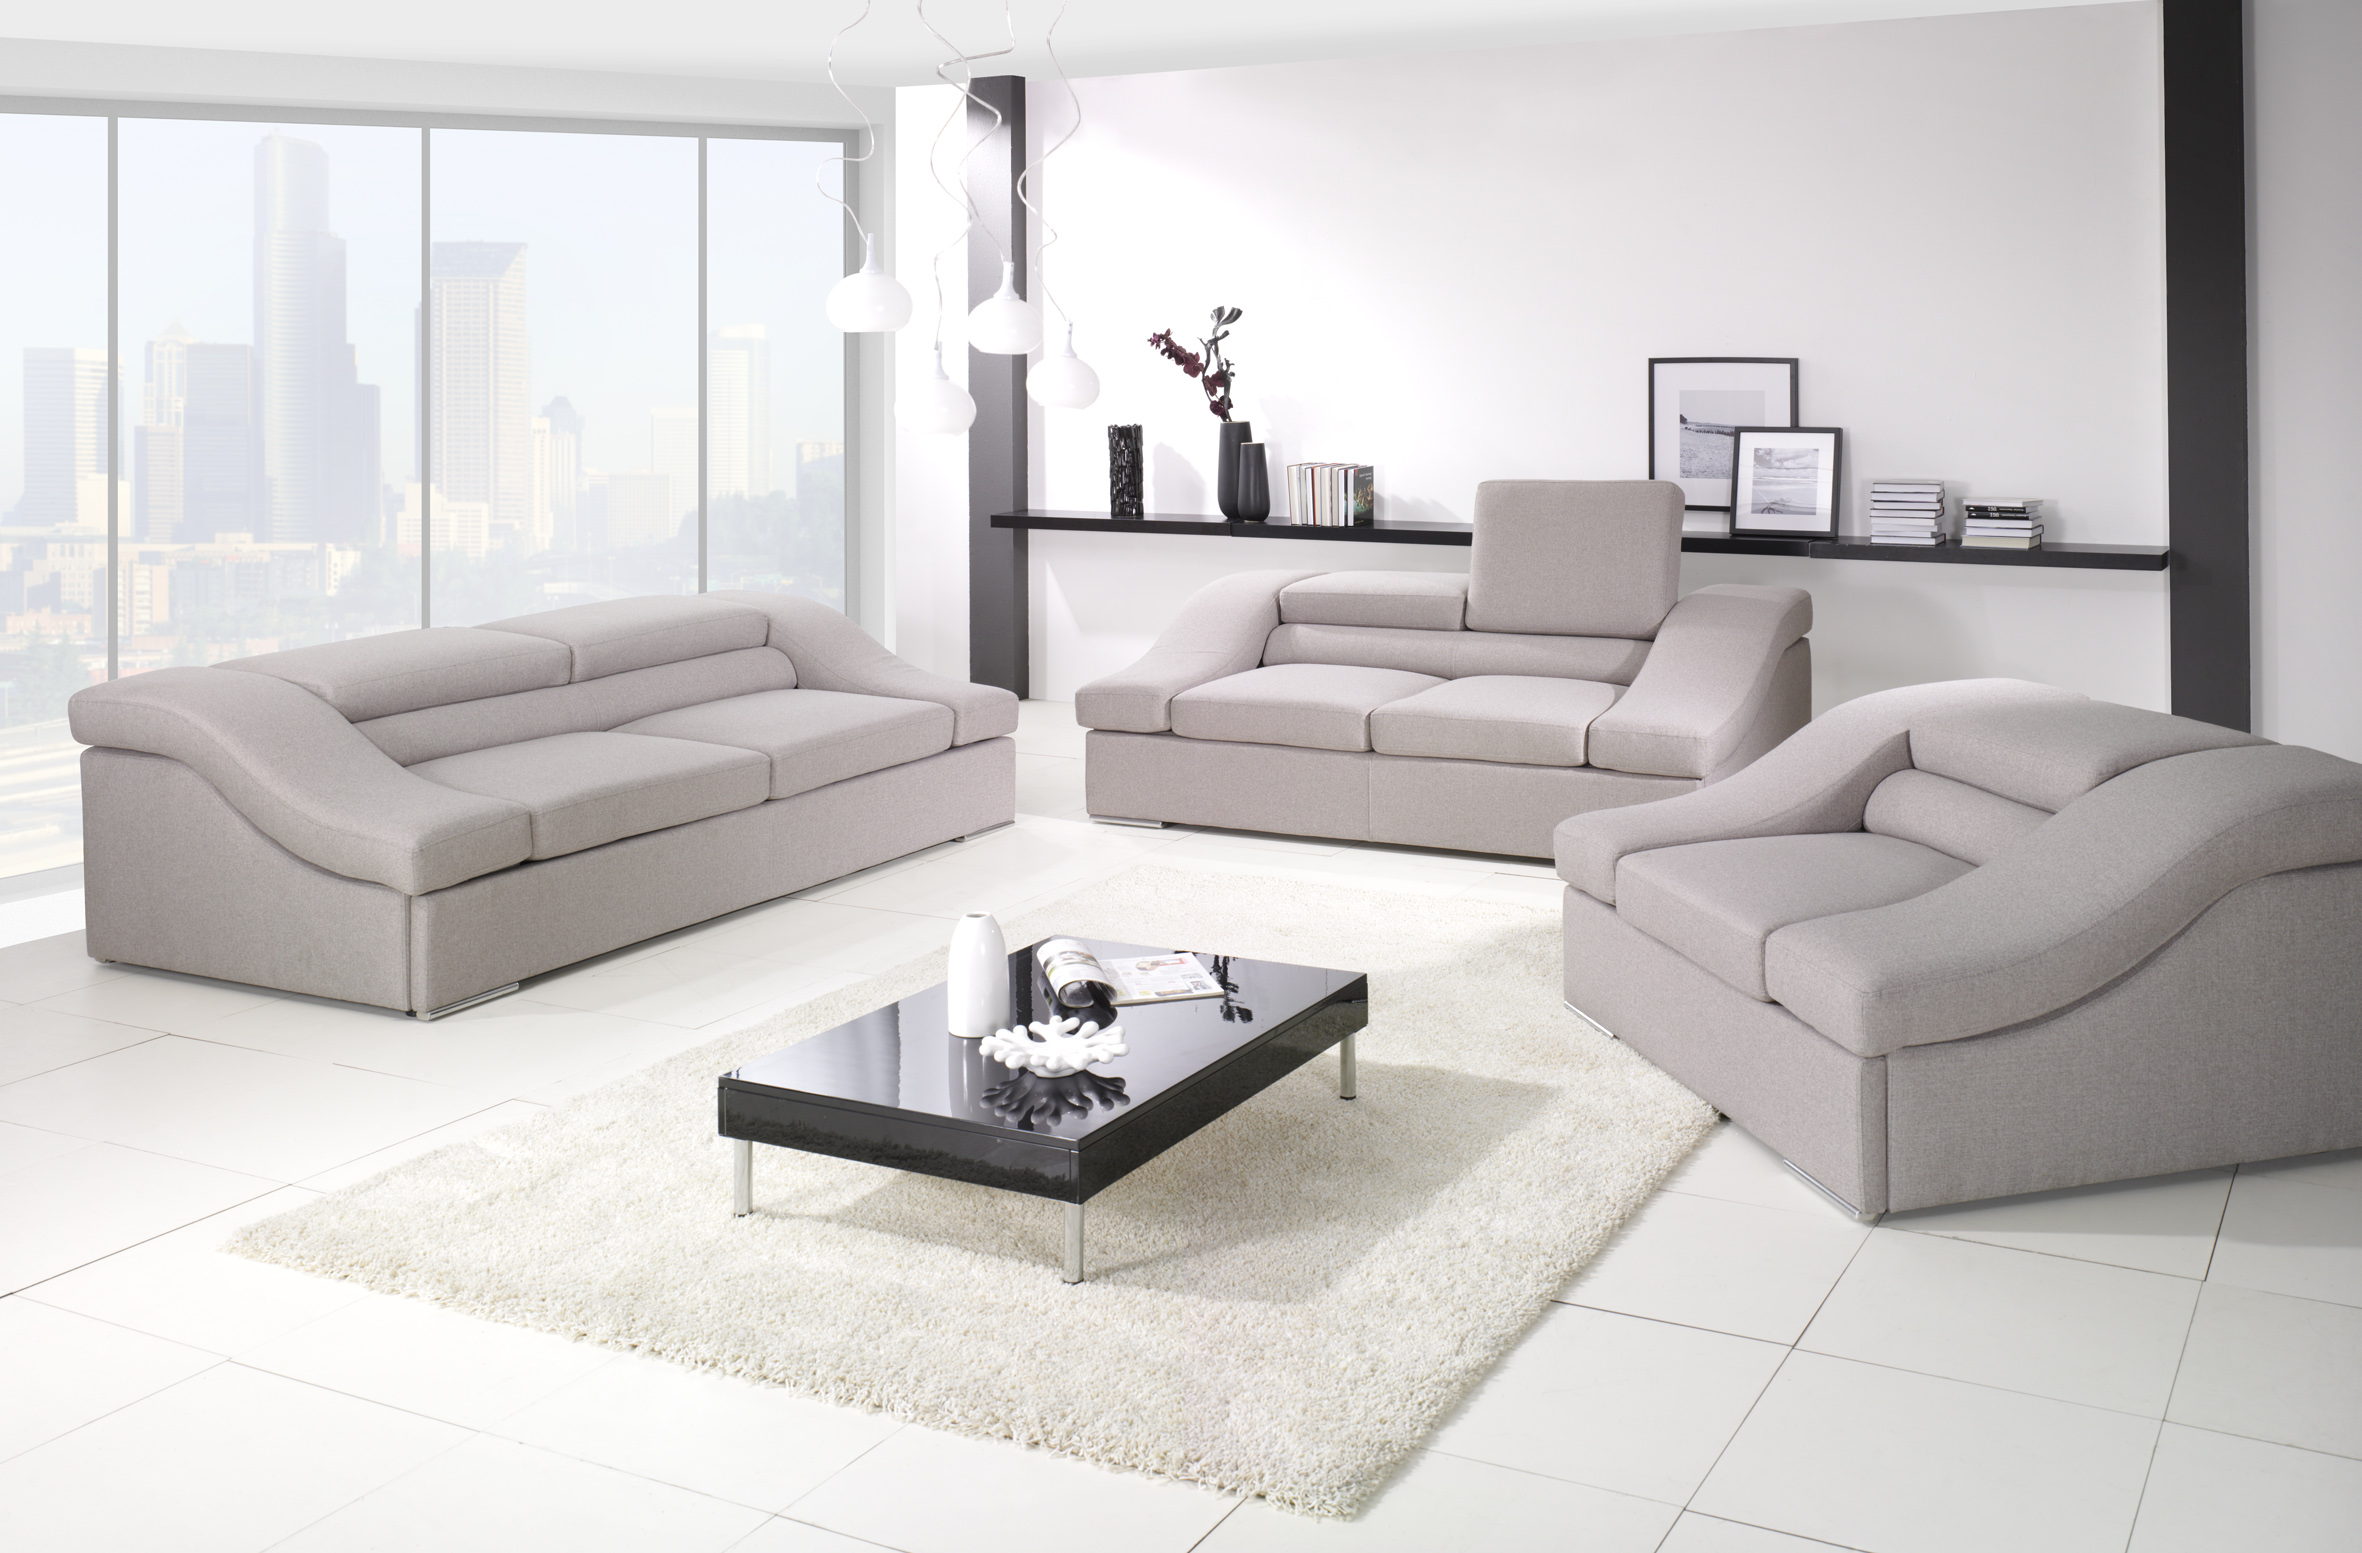 Sessel Synonym Kleines Sofa Synonym